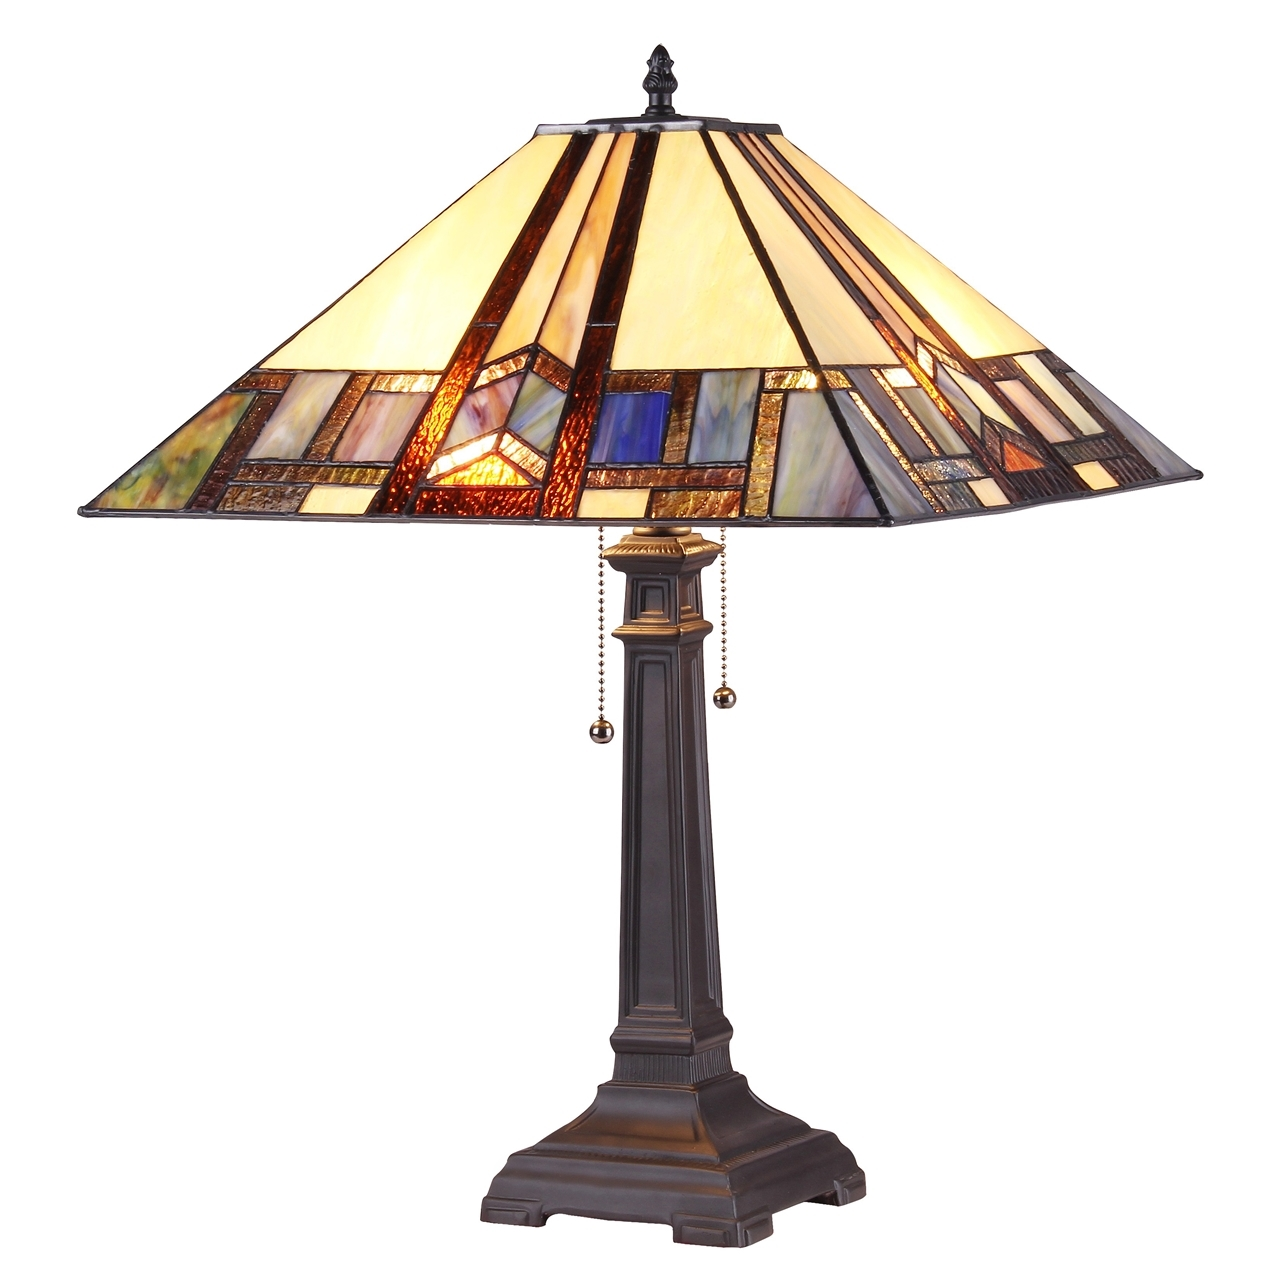 0002325_ch35857pm16 tl2 table lamp